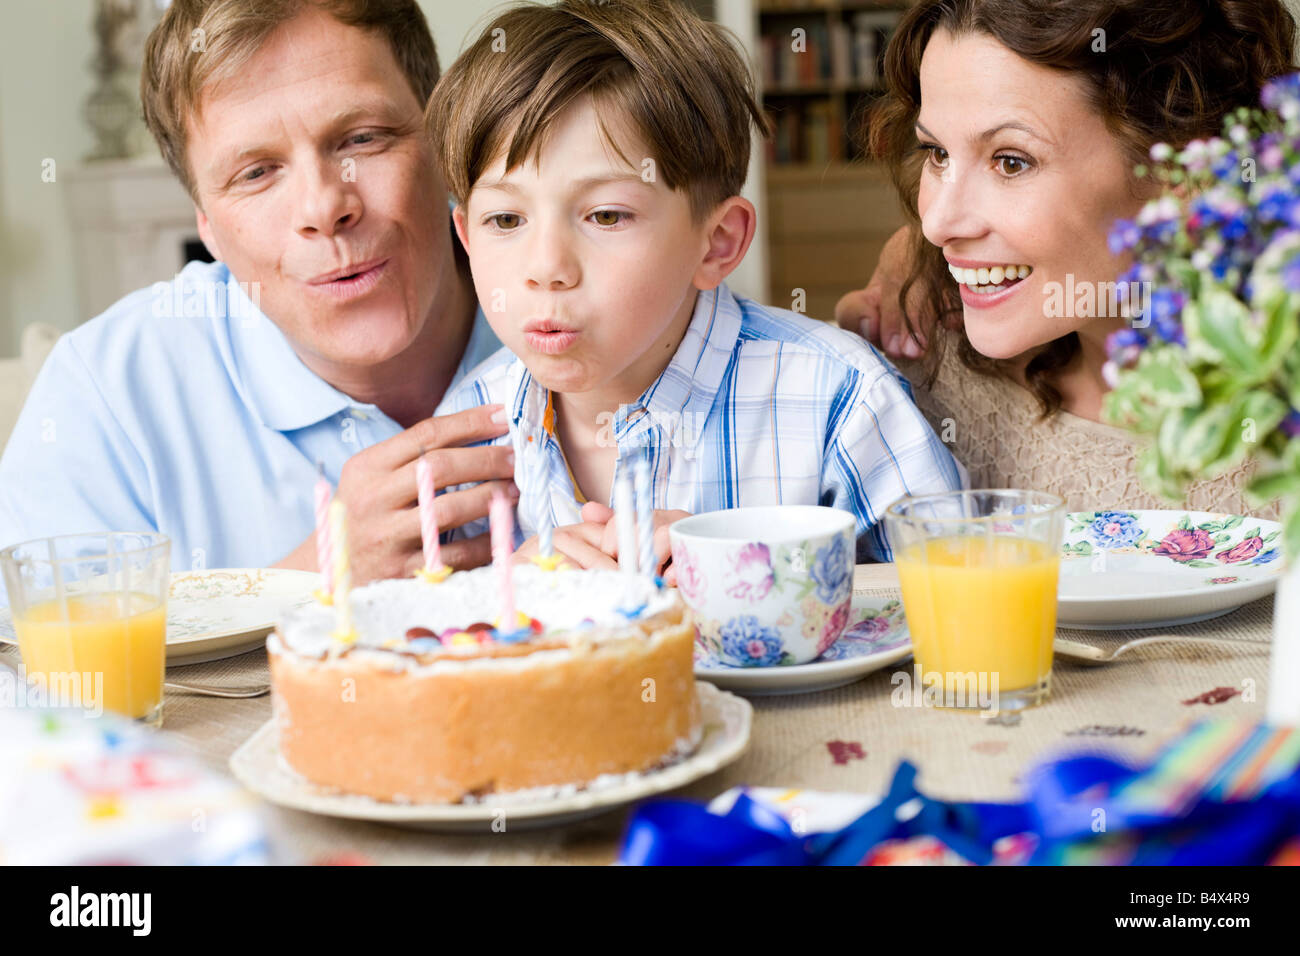 Boy blow out his birthday candles - Stock Image